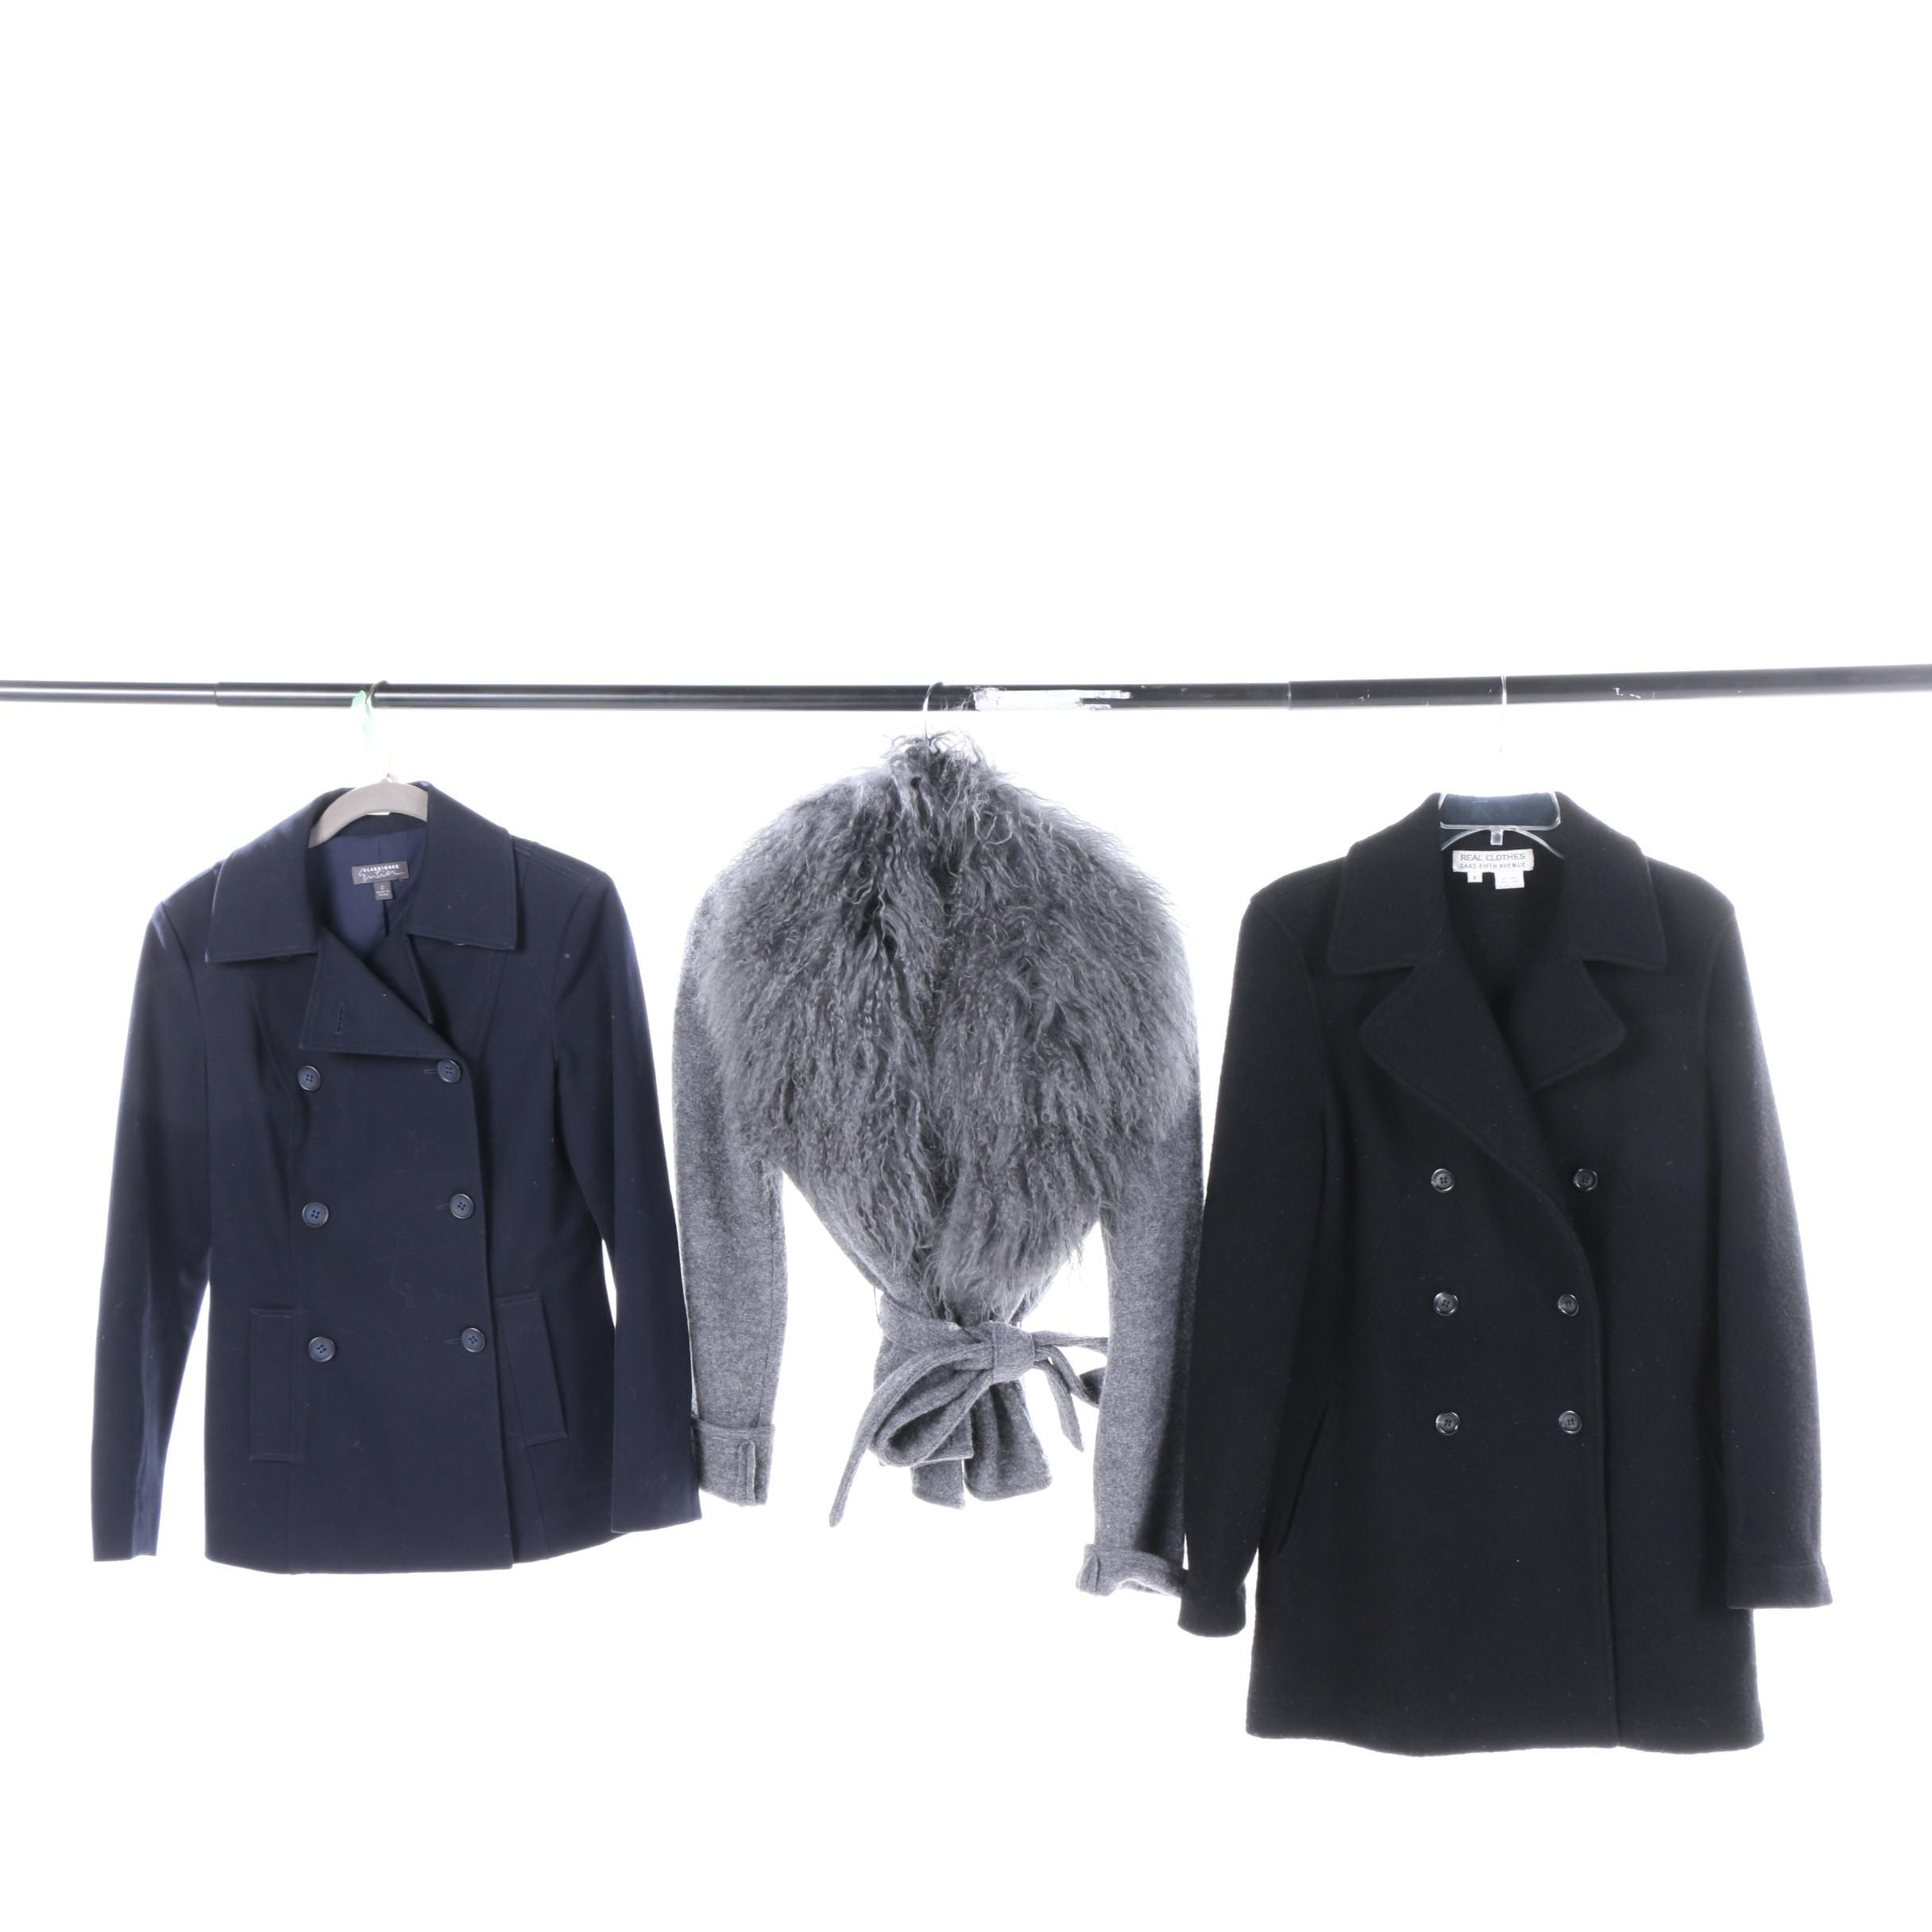 Peacoats and Sweater with Mongolian Lamb Fur Collar Including Saks Fifth Avenue